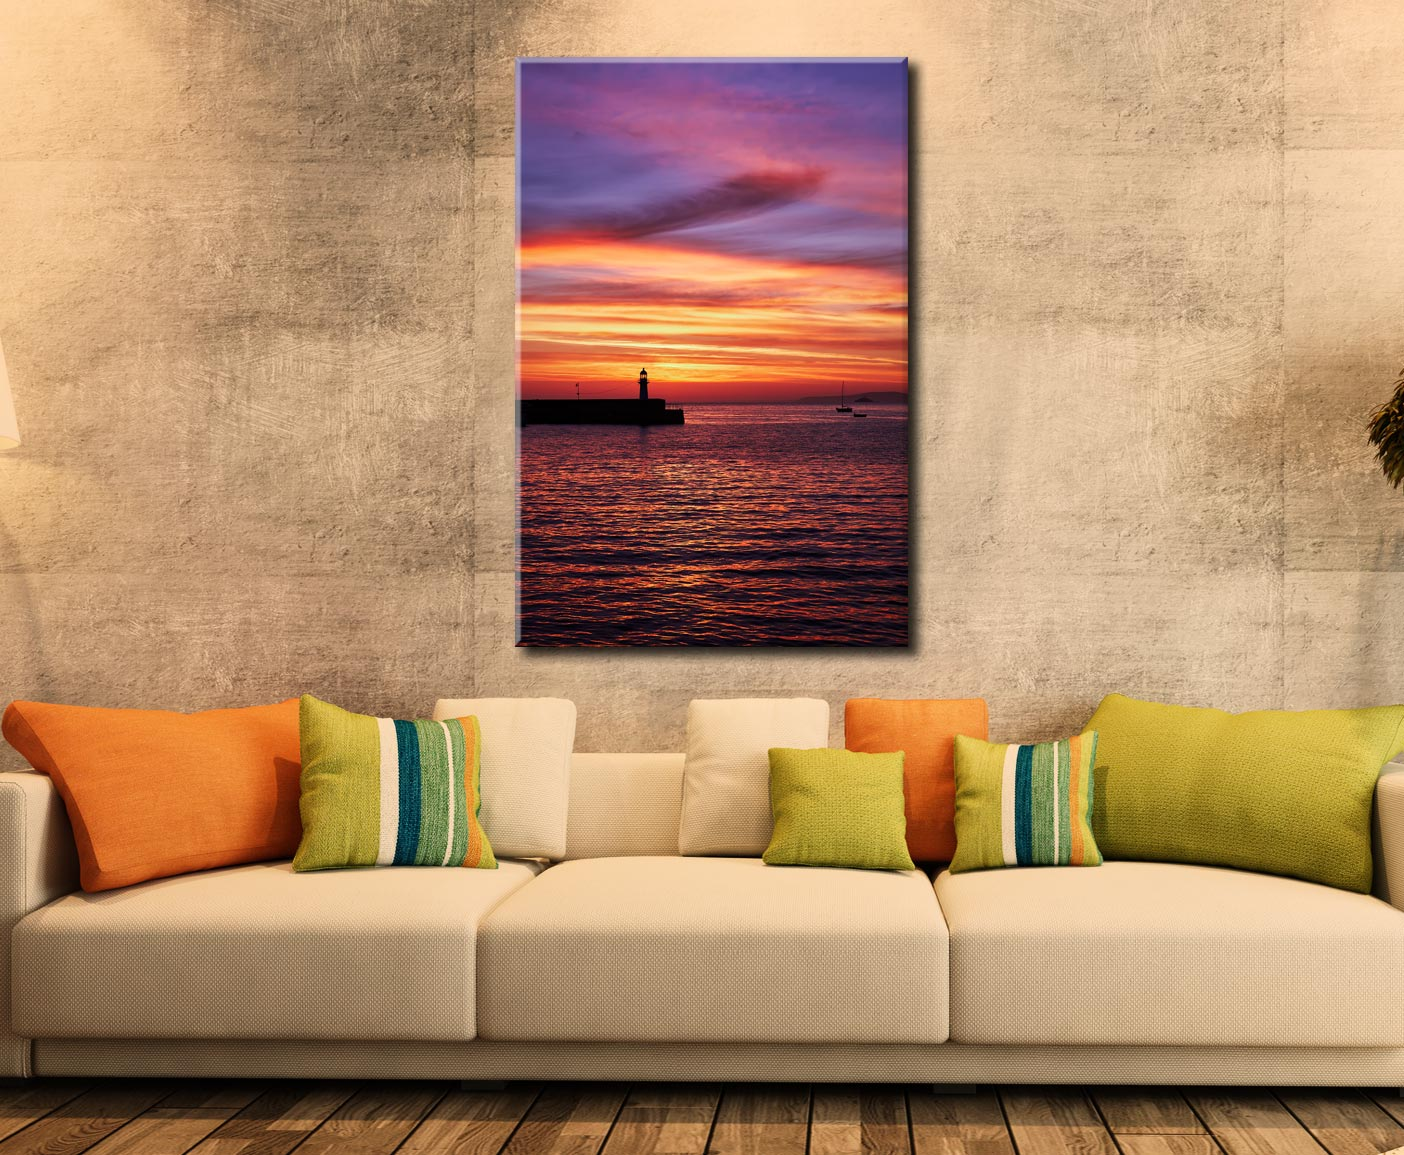 Dawn St Ives Lighthouse - Cornwall Canvas on Wall